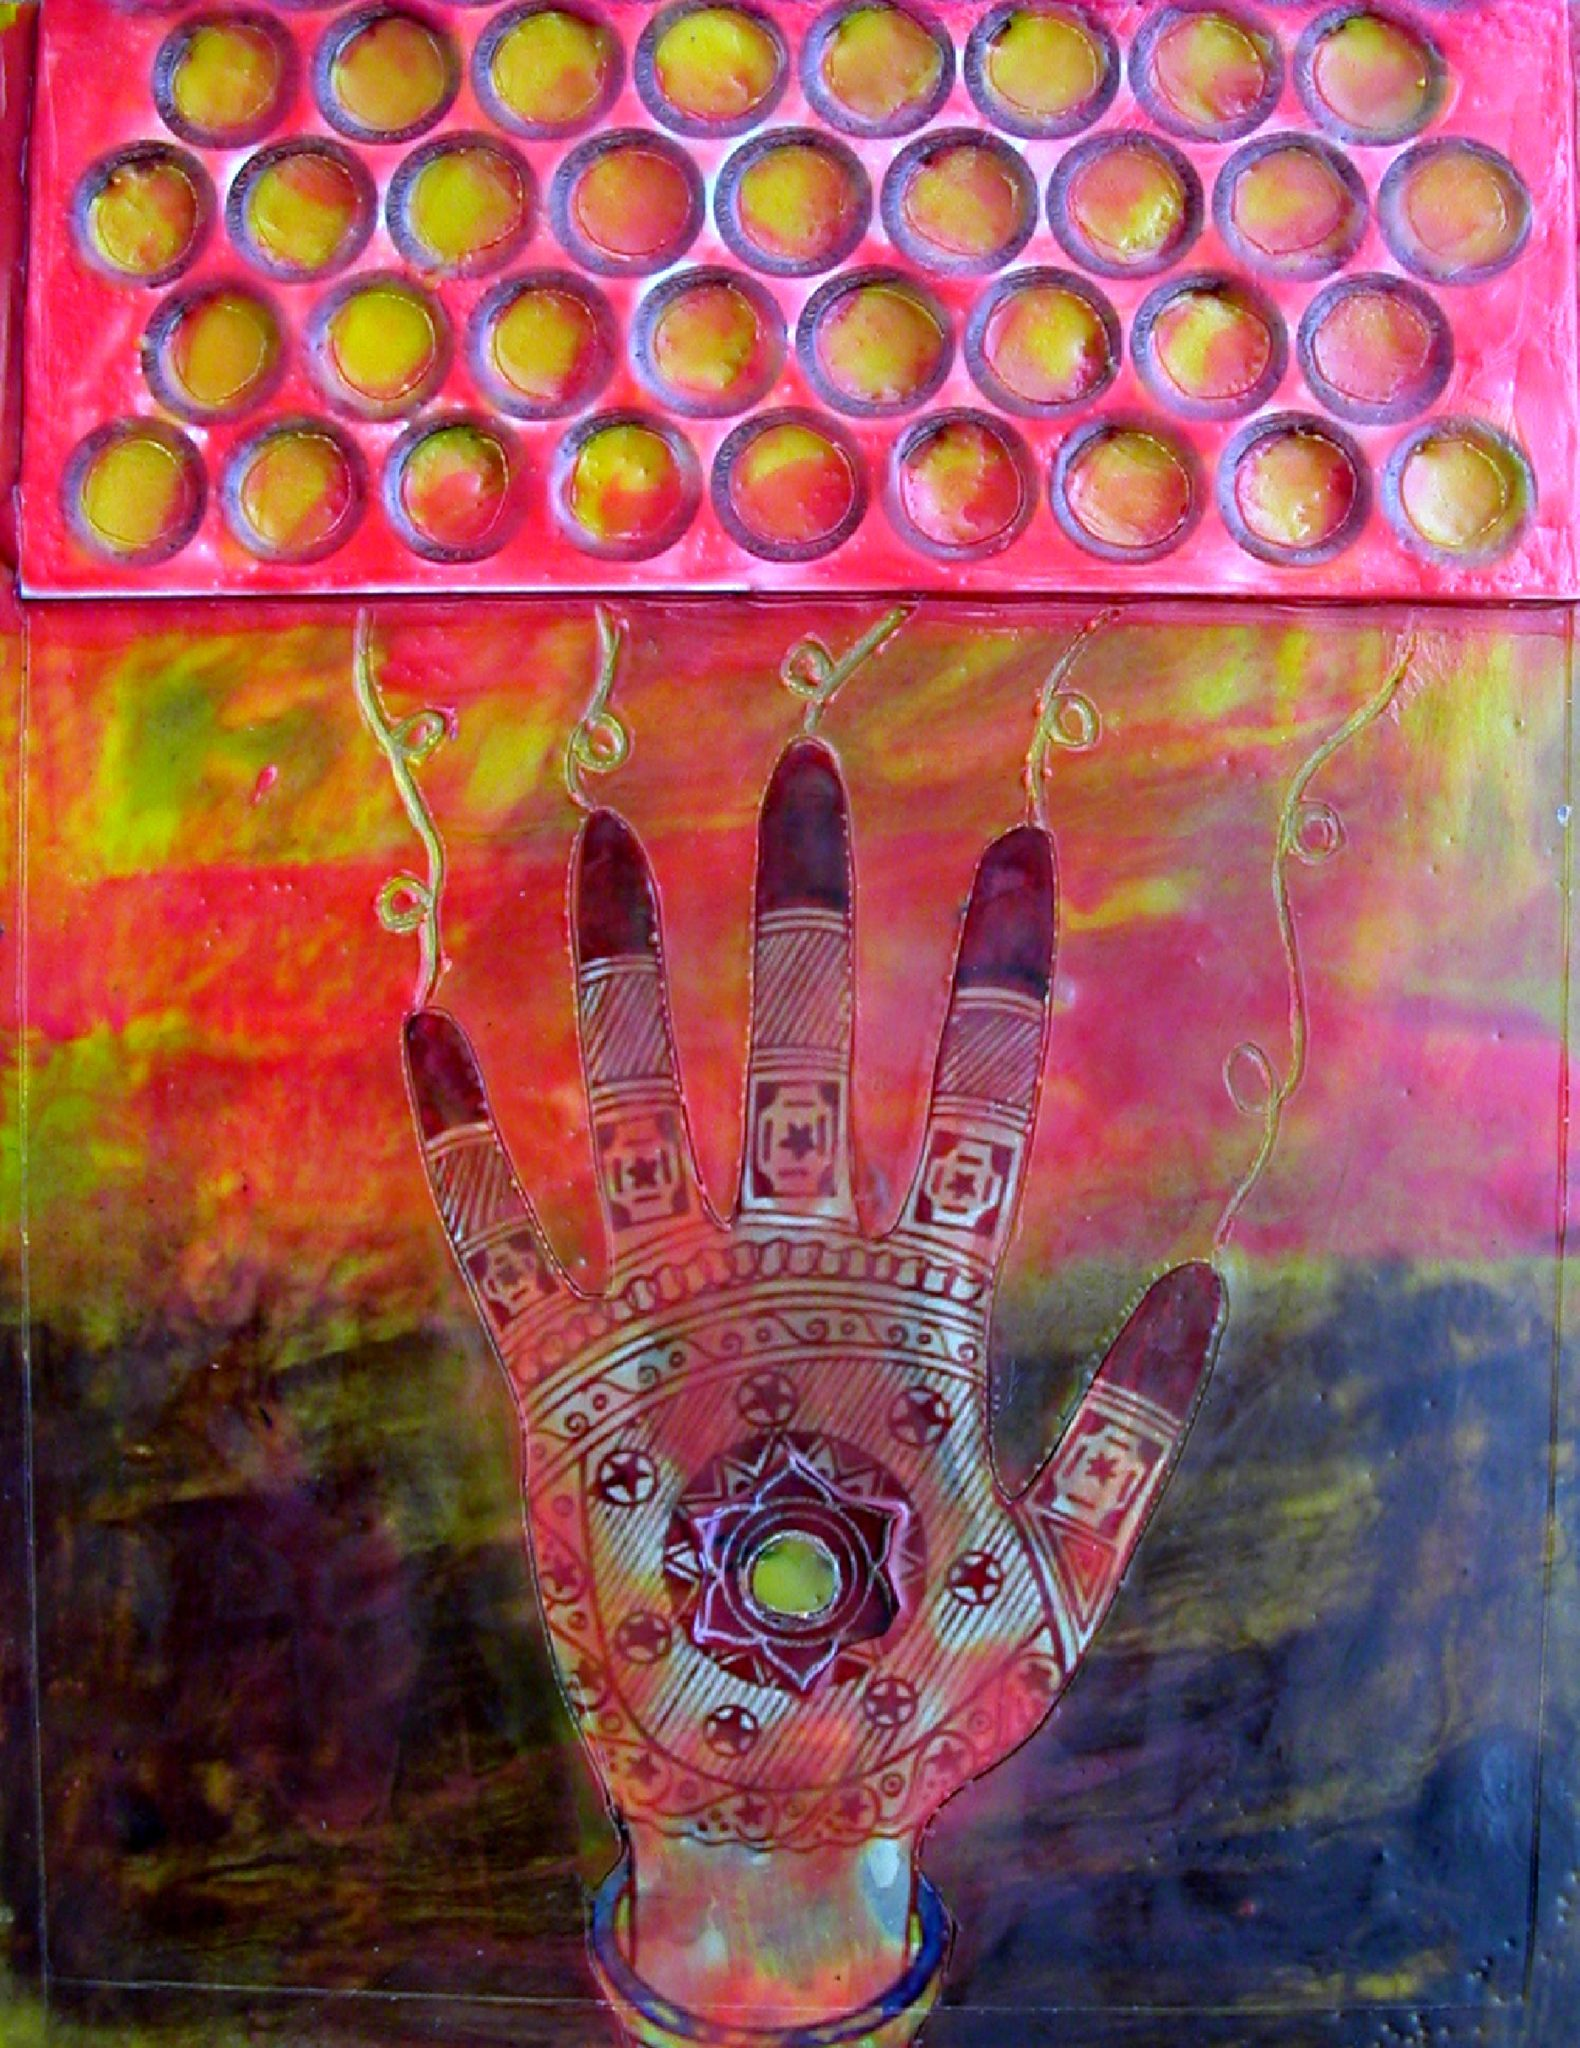 34 Suns of Healing, mixed media encaustic by Courtney Putnam